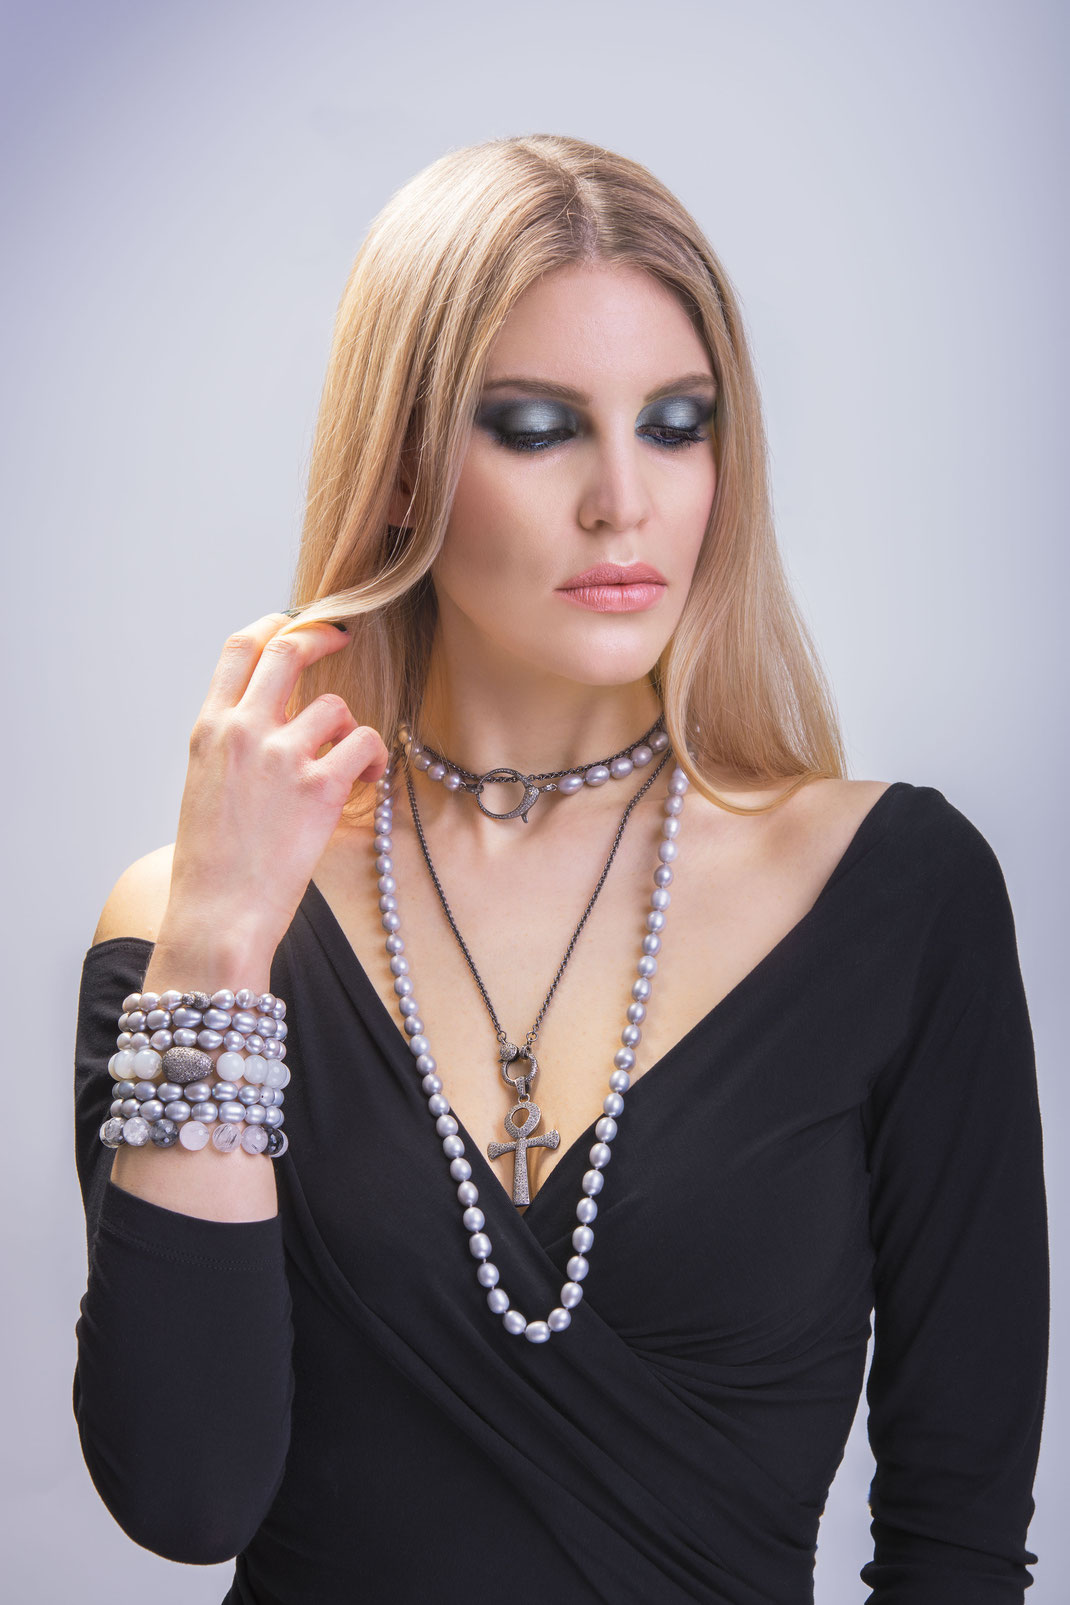 long layered casual elegant pearl and diamond necklace showing edgy but elegant contrasts from grey Sterling and freshwaterpearl